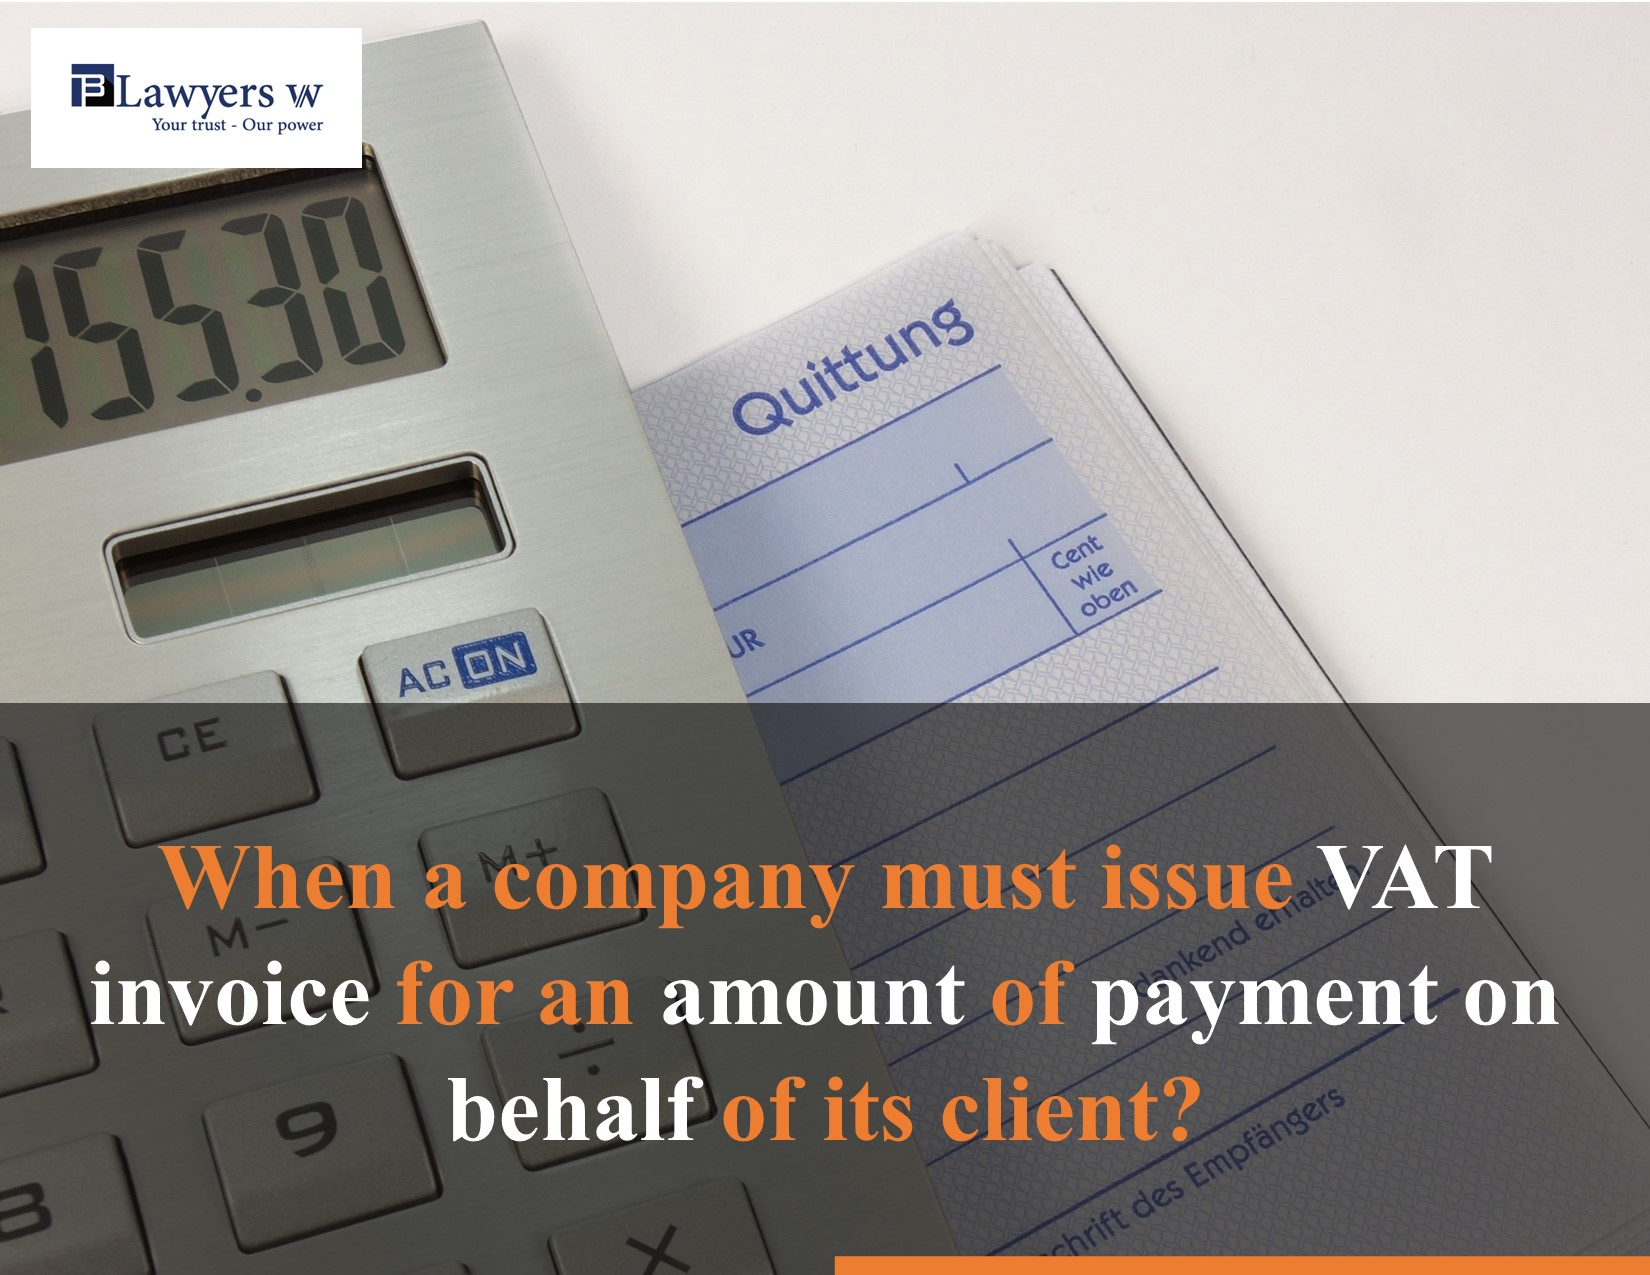 When a company must issue invoice for an amount for payment on behalf of another company